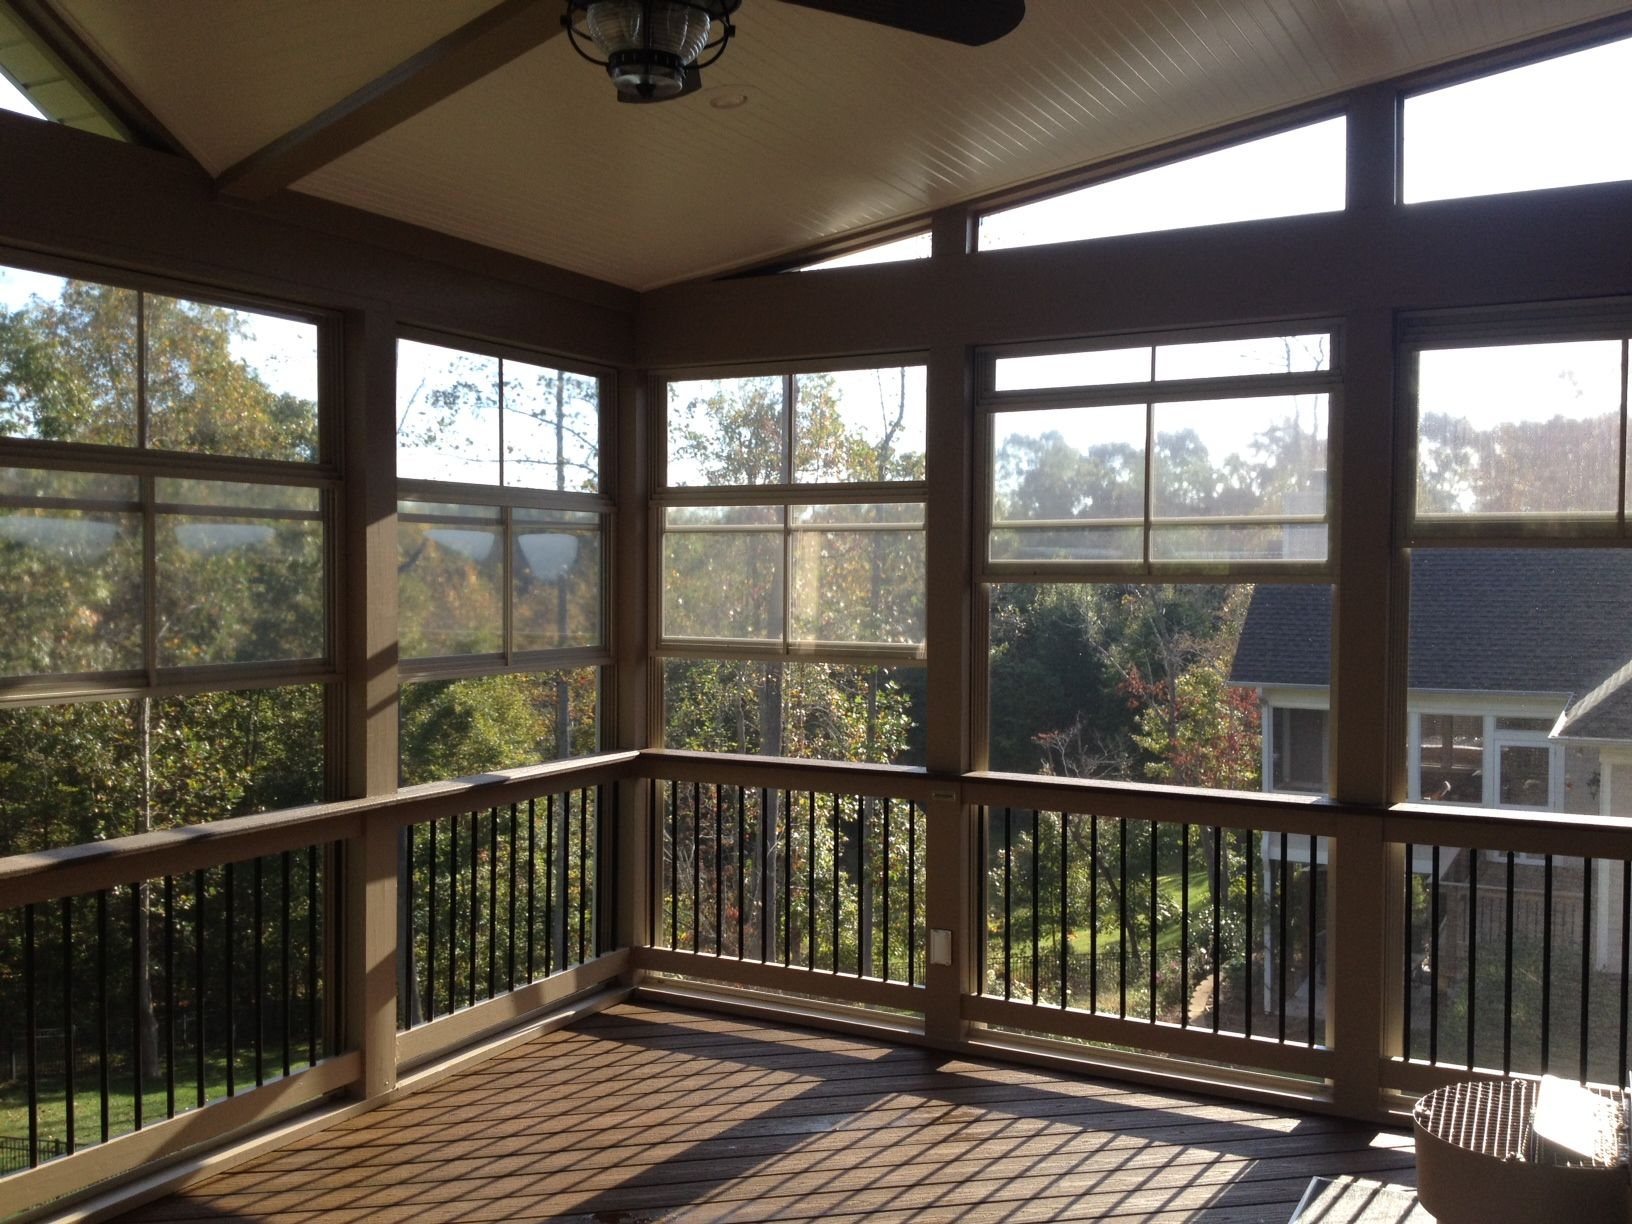 Our Most Versatile Outdoor Structure The 3 Season Room Archadeck Outdoor Living Porch Design Eze Breeze Windows Screened Porch Designs